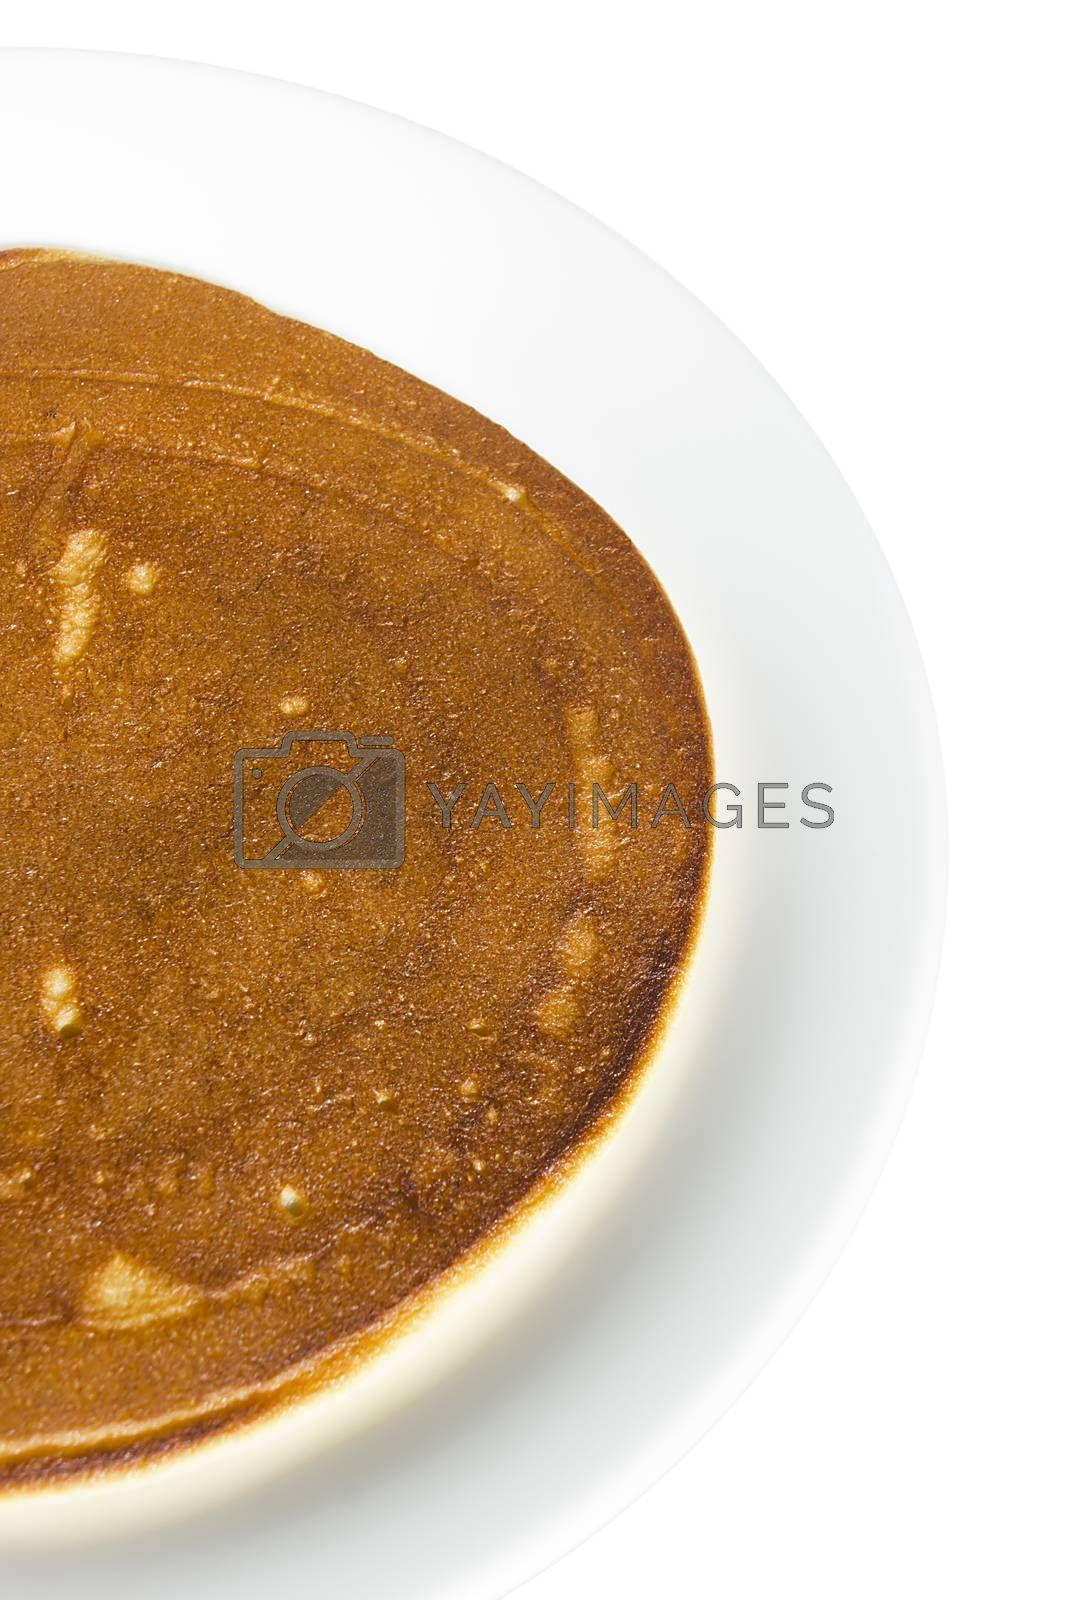 Royalty free image of Freshly baked pancake on a plate by VIPDesignUSA